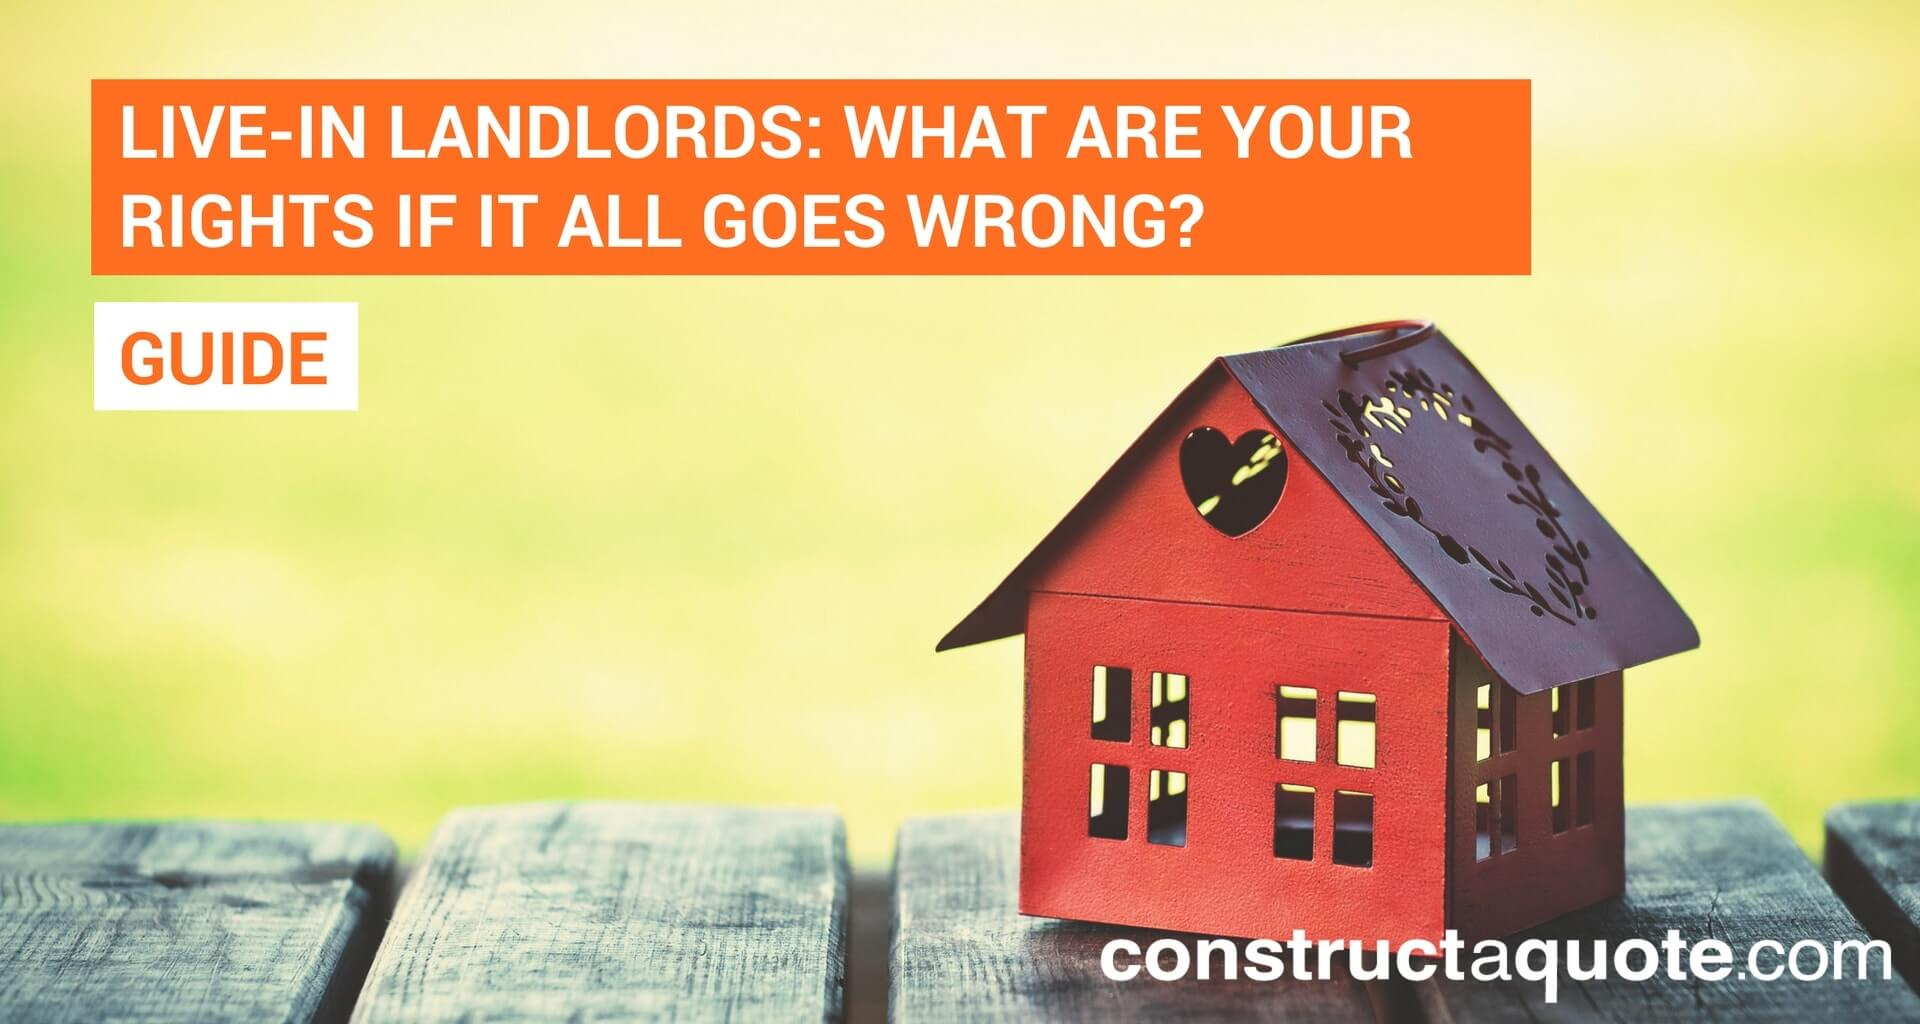 Live-in landlords: What are your rights if it all goes wrong?